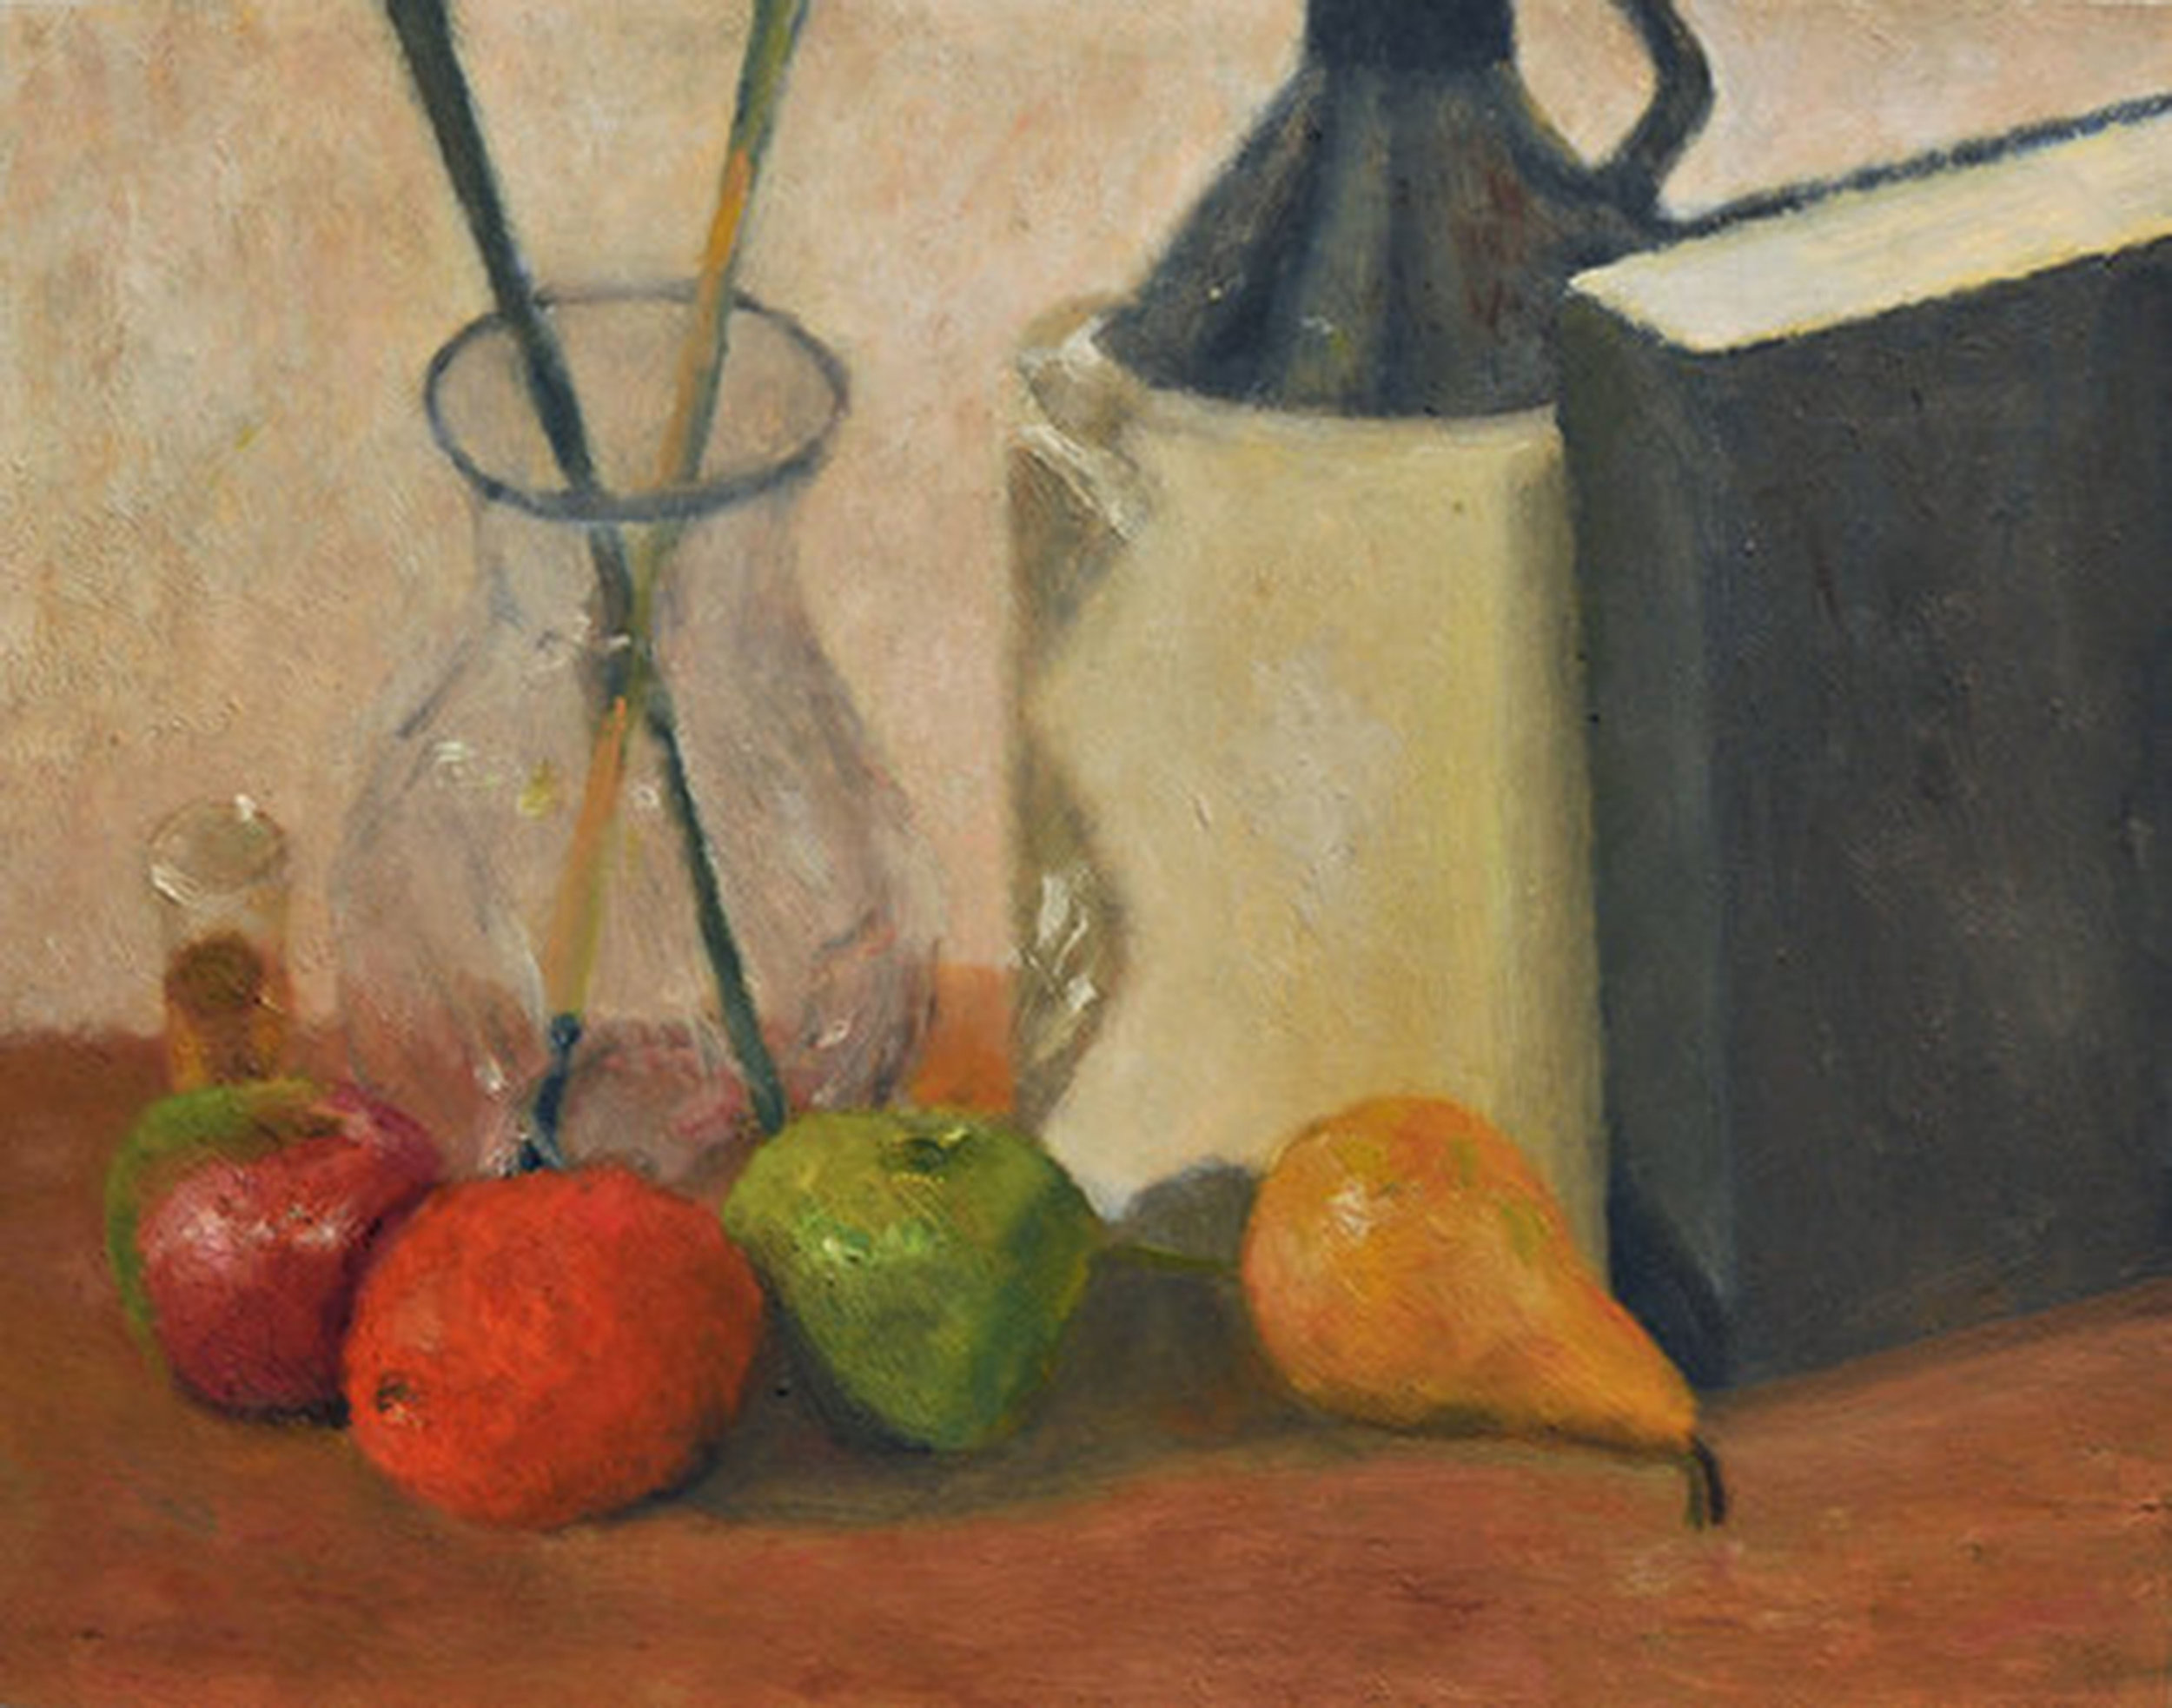 Fruit, Jug, Book, Vase and Glass